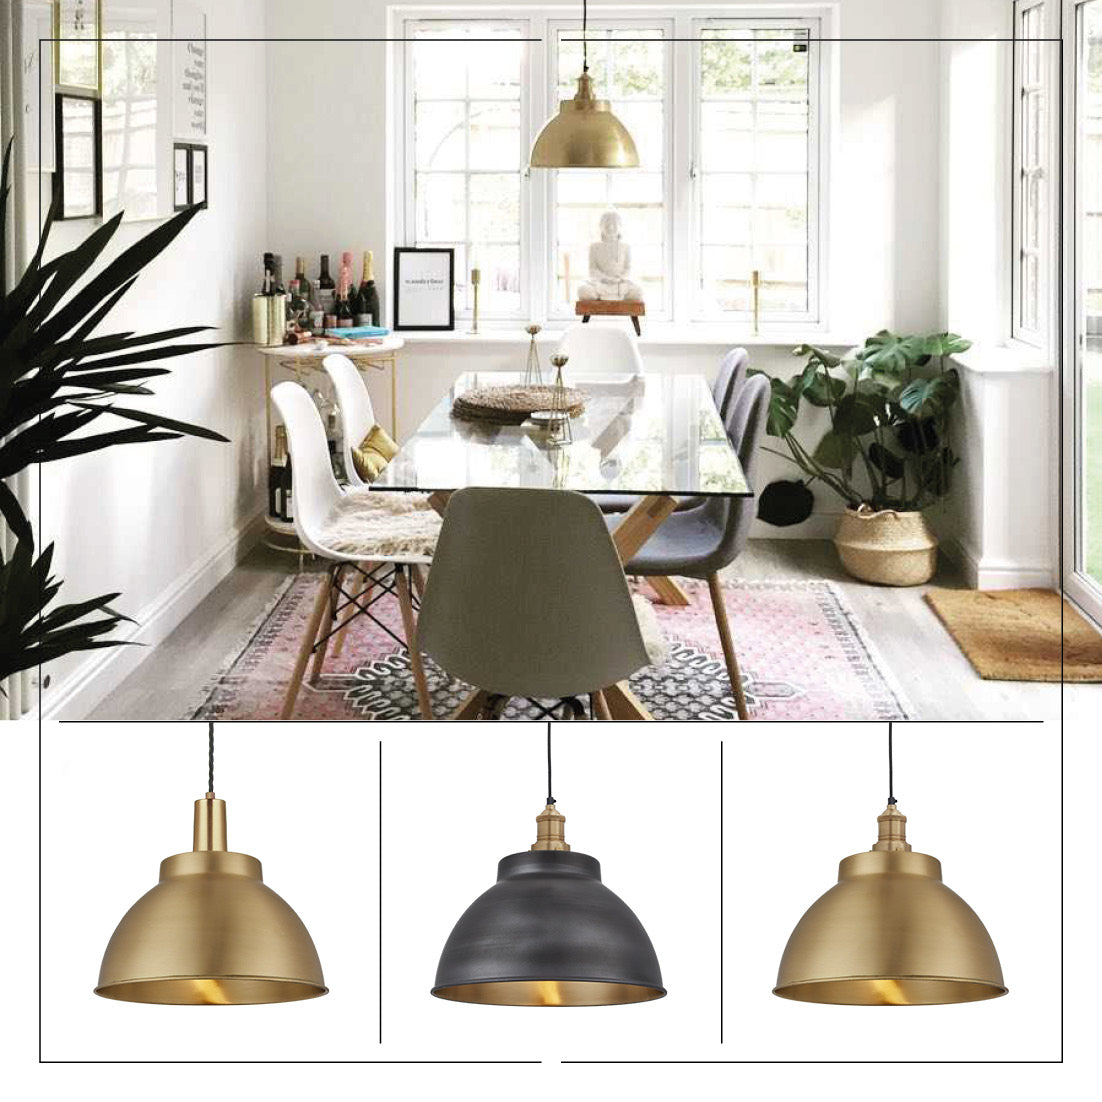 Brass industrial lights over dining table